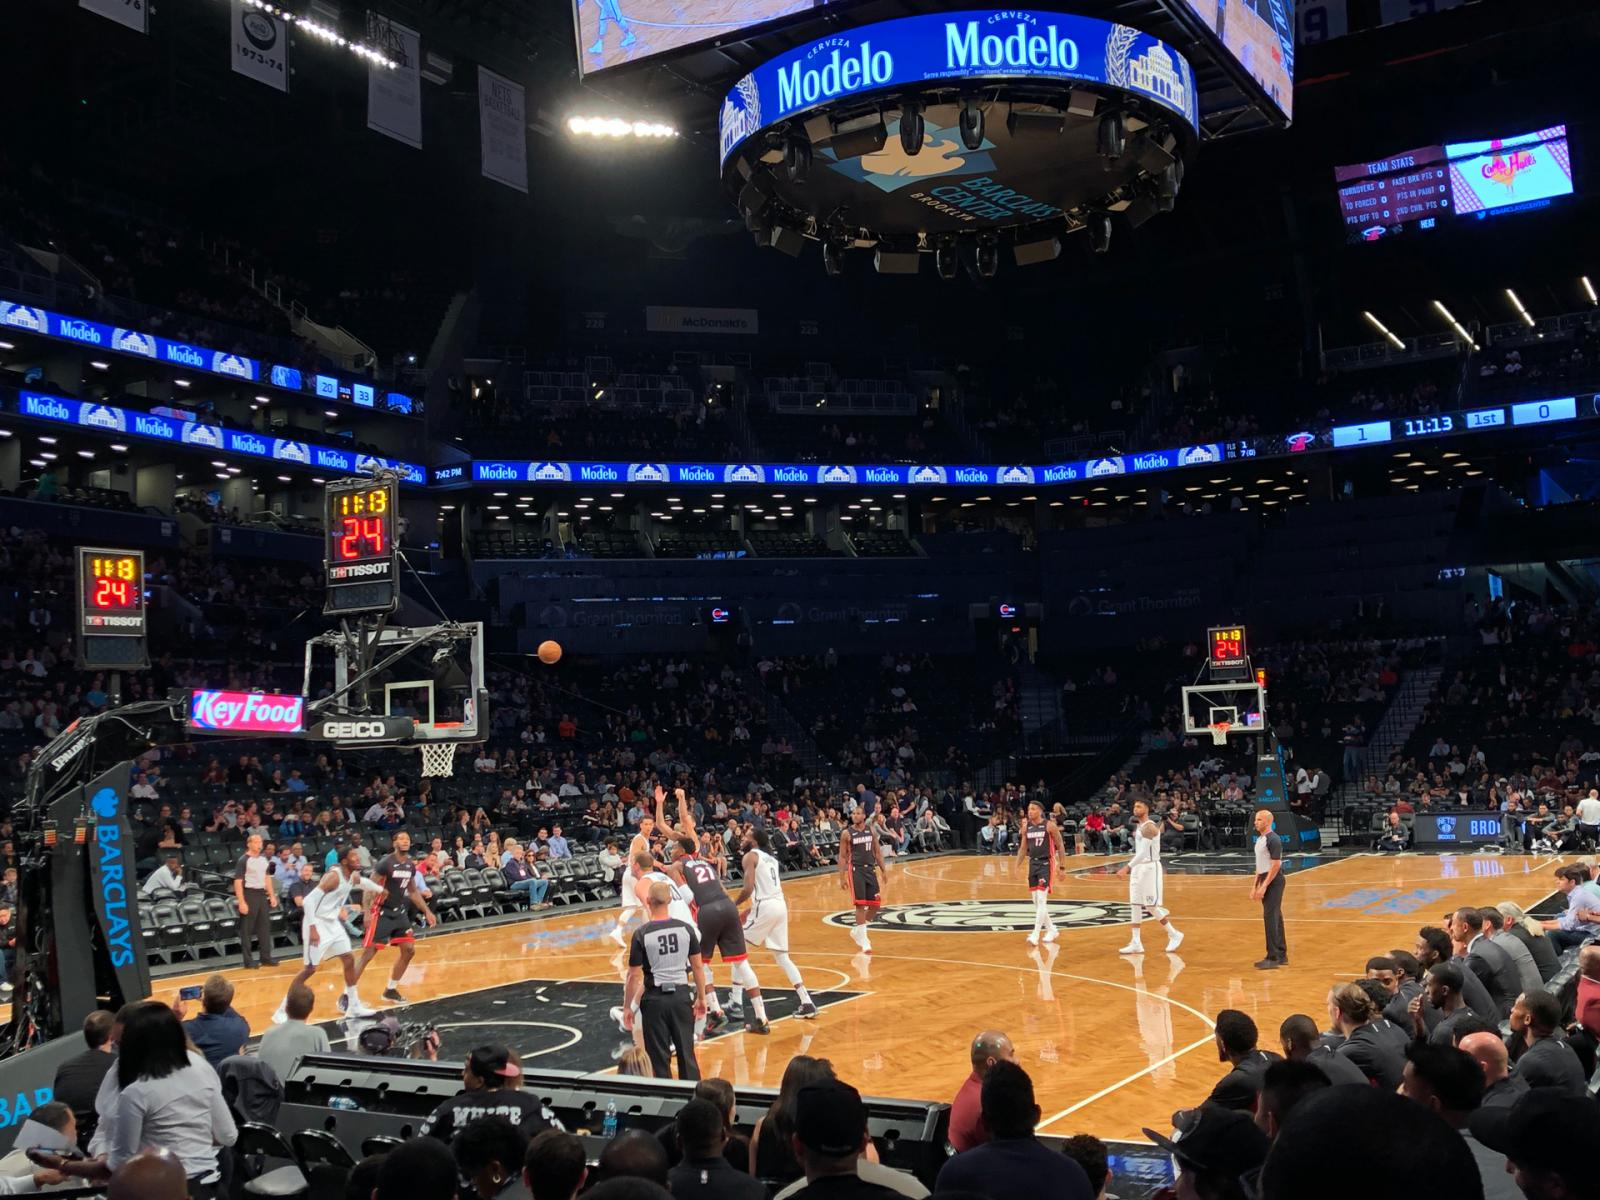 Brooklyn Nets at the Barclays Center